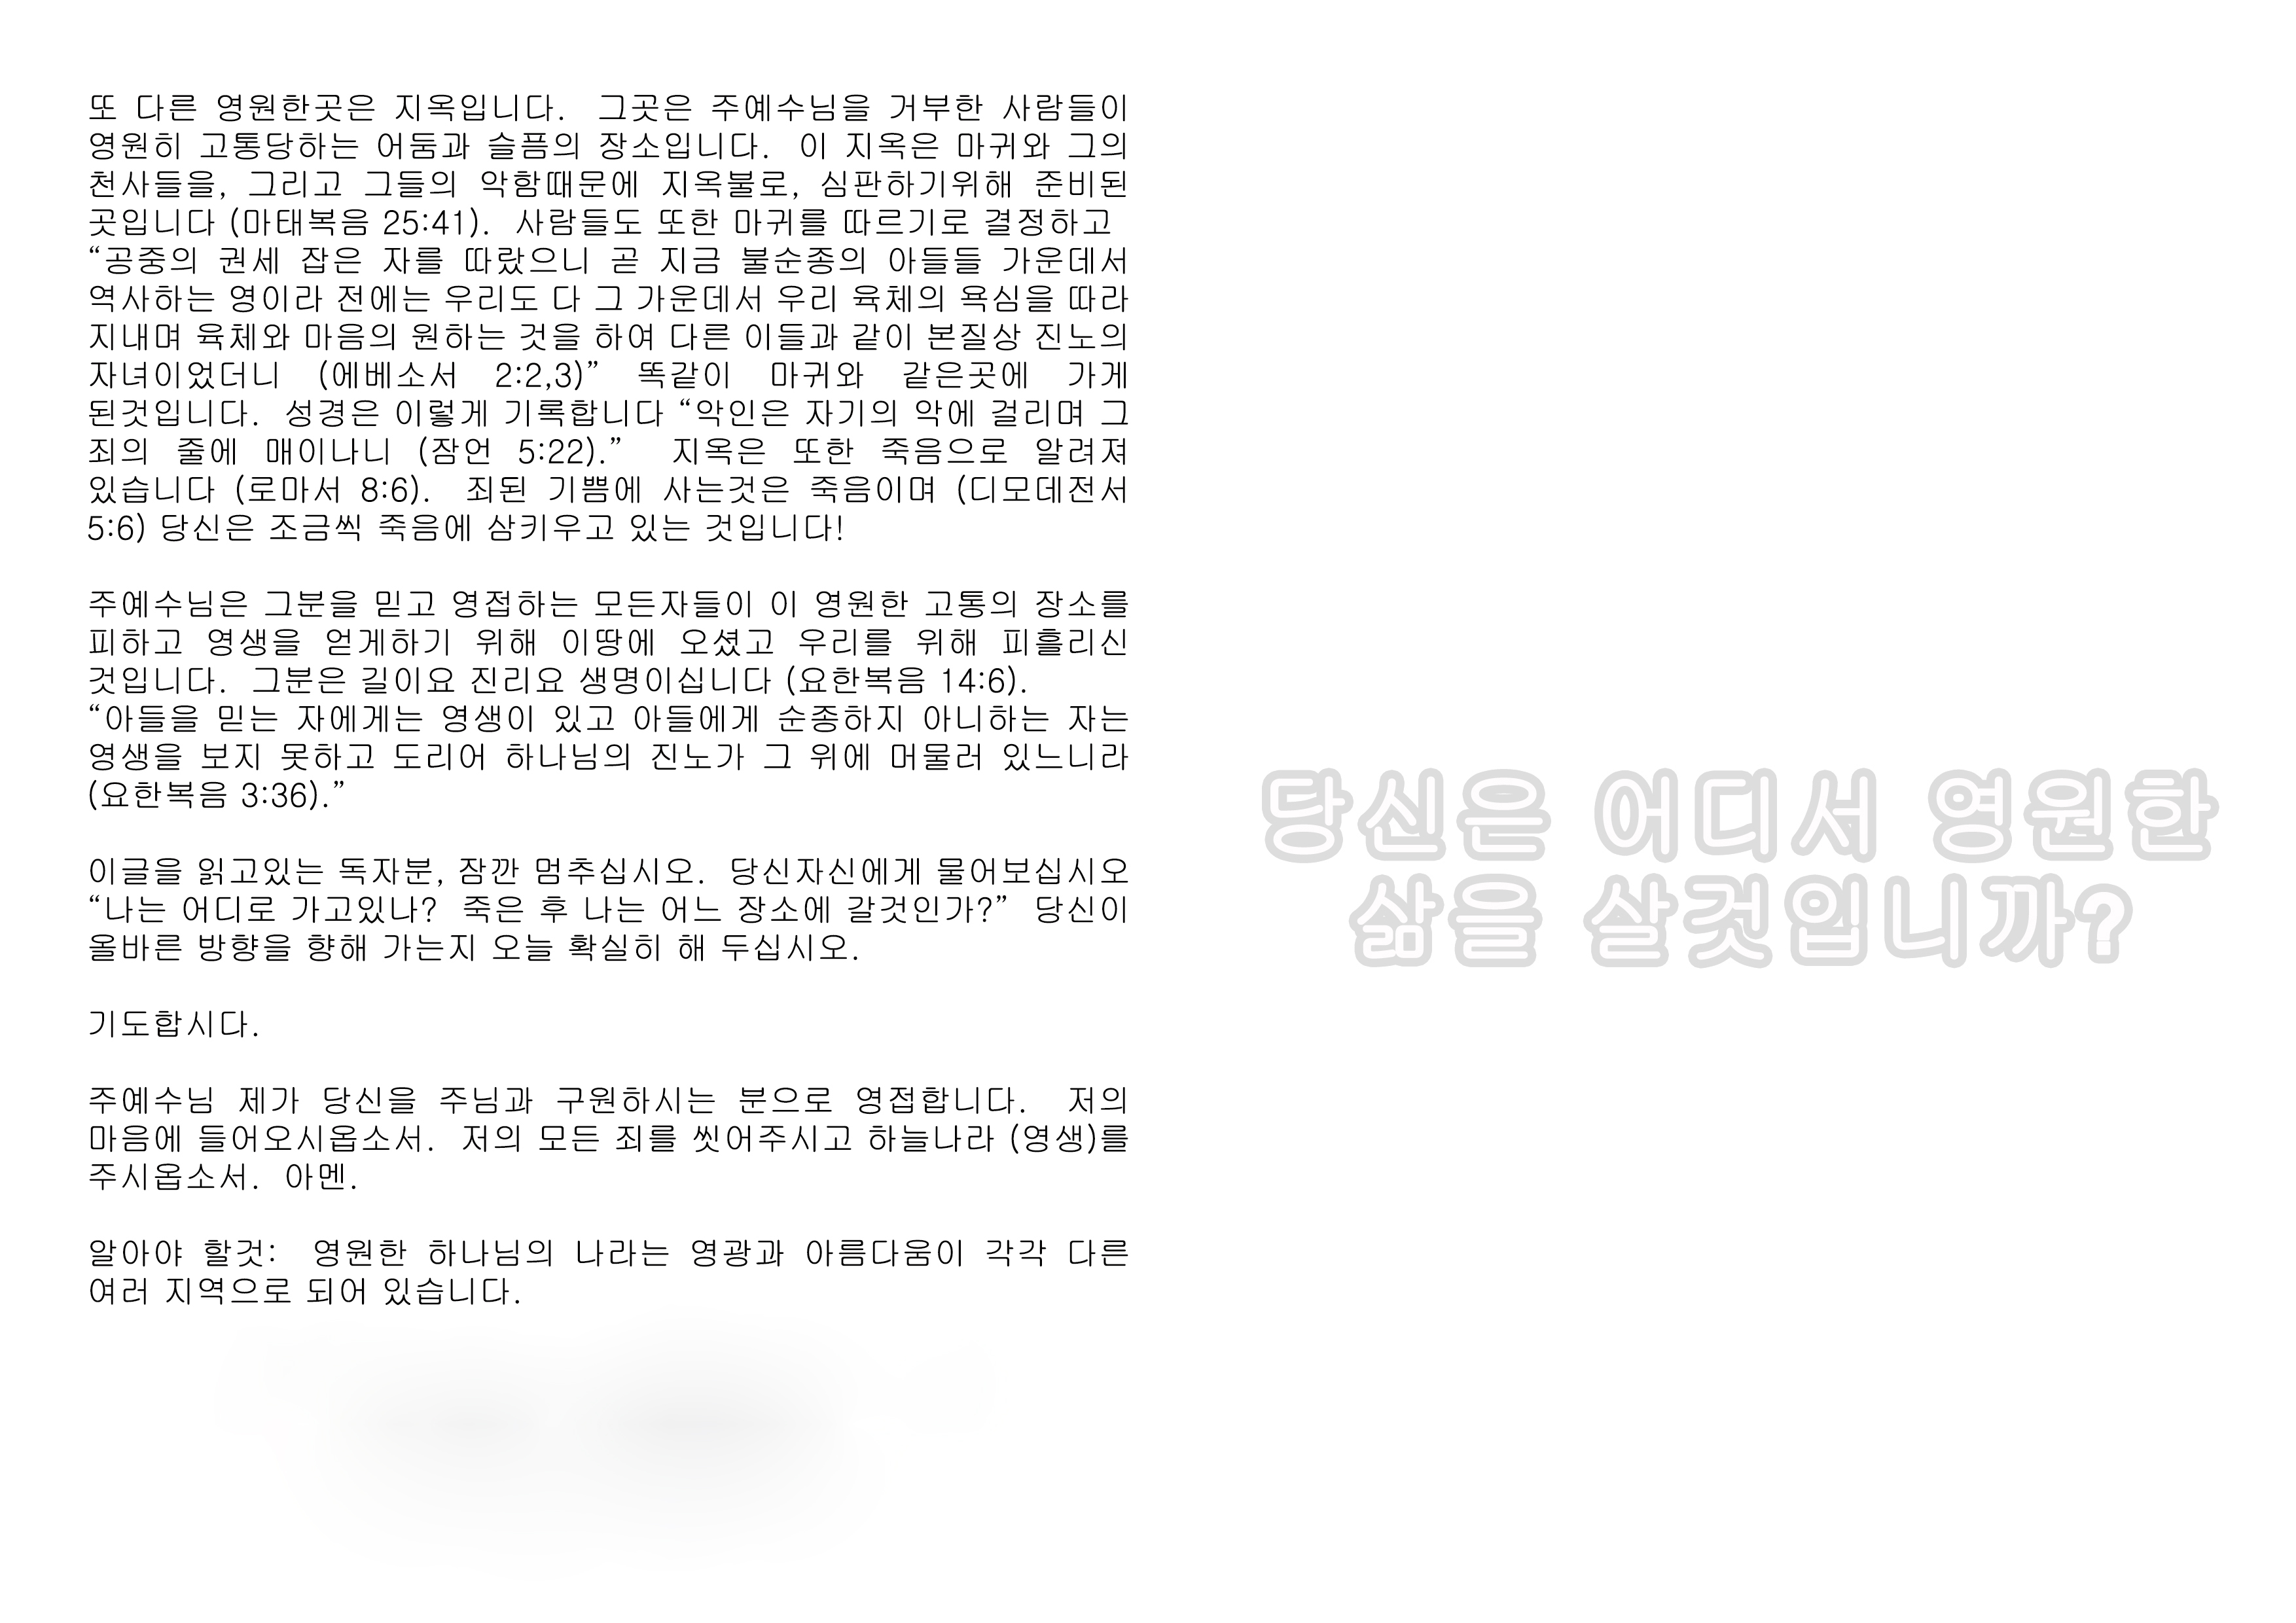 Where-will-you-spend-your-eternity-korean-page-21